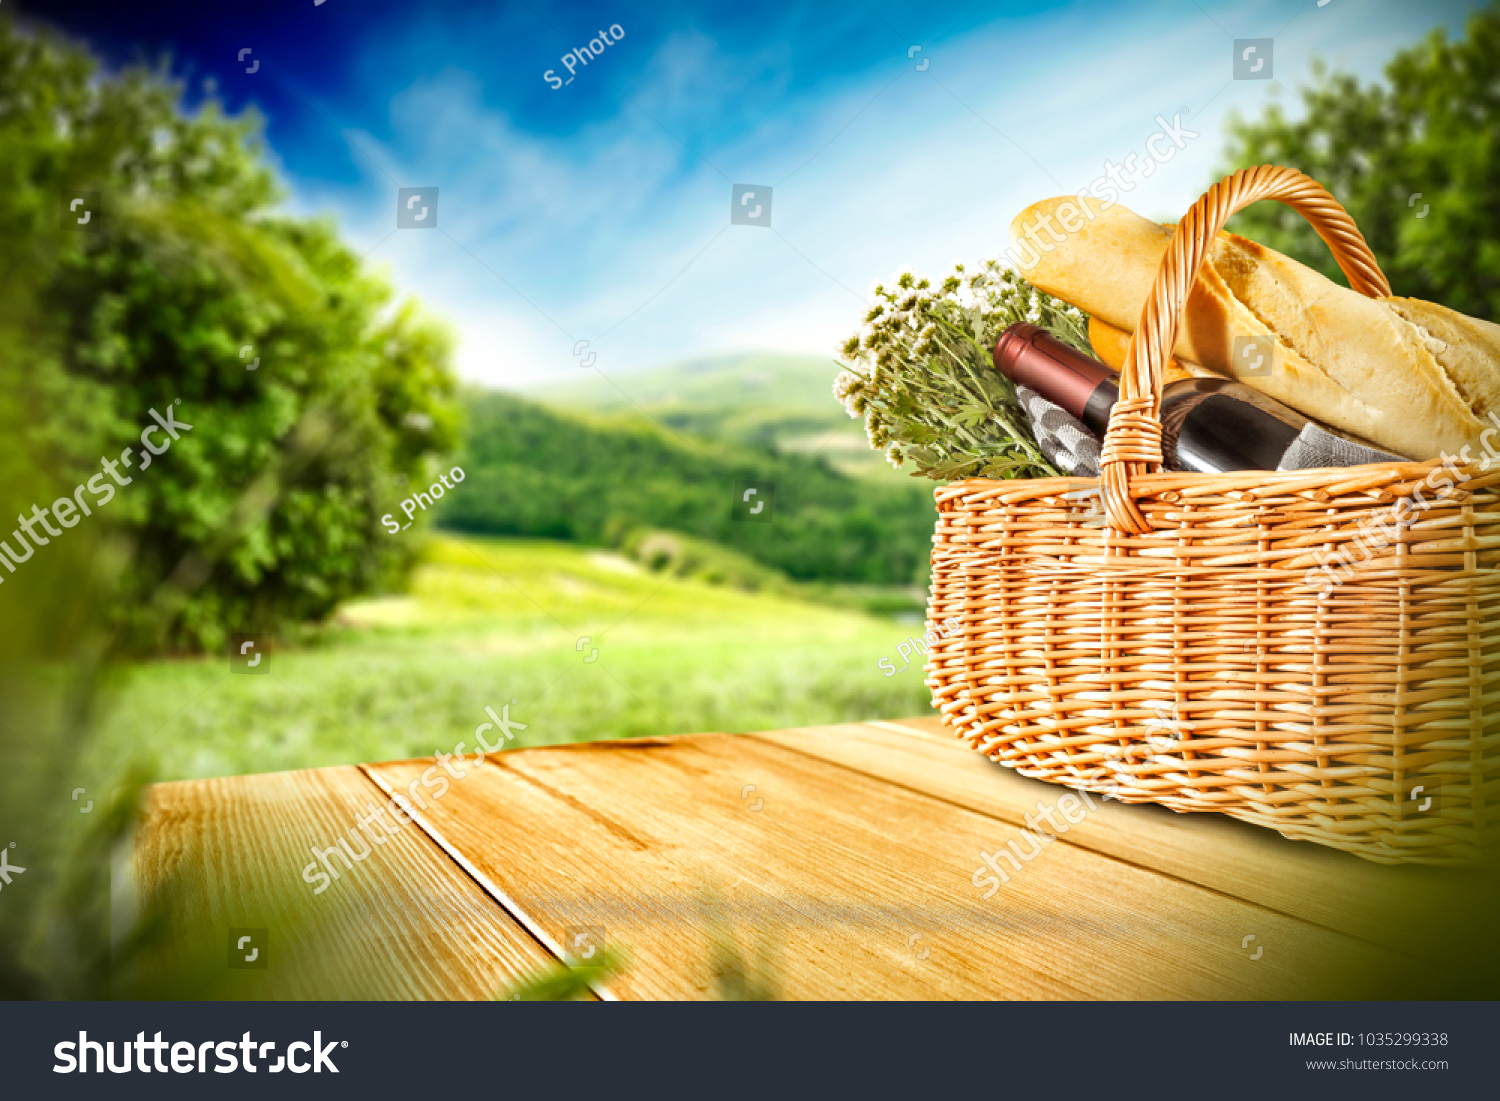 Picnic Basket On Wooden Table Free Stock Photo Edit Now 1035299338